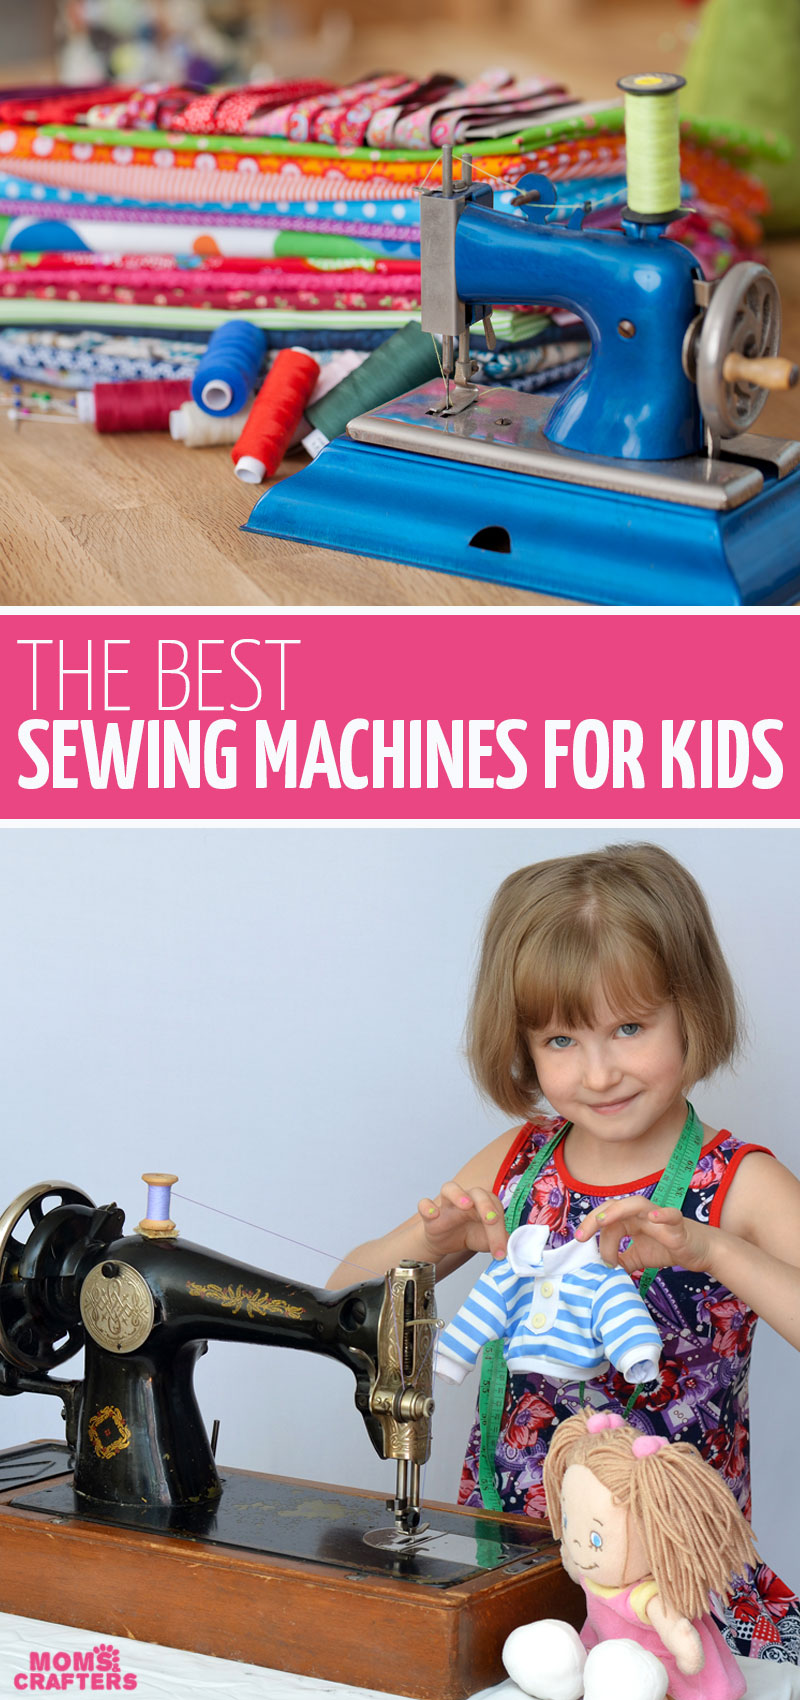 Click for the best sewing machine for kids - both toy machines that work and REAL sewing machines for beginners that are good for kids too! You can teach kids to sew pretty young and these are the best tips and machines for children.